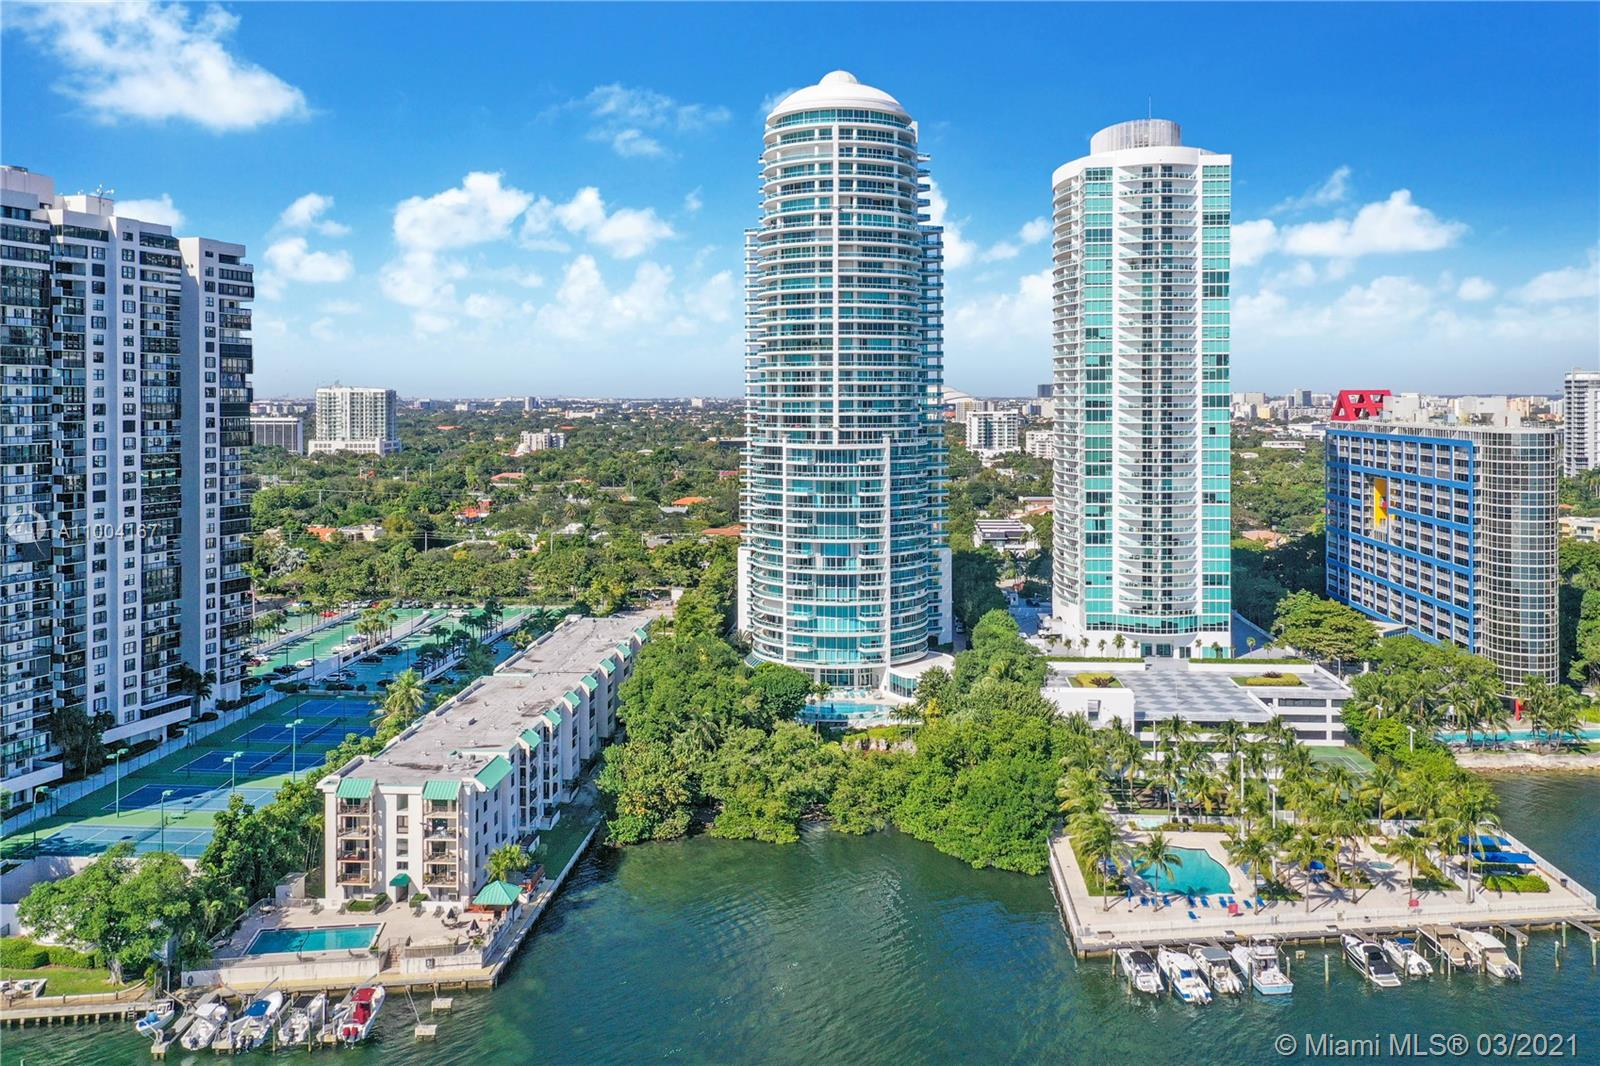 This is Brickell living exemplified. Located in the iconic Bristol Towers, this impeccable, fully furnished unit is priced to sell and will not last on the market. Features include: oversized balcony with water view, exquisite imported Italian furniture from Arte Veneziana, lighting fixtures from De Majo Illuminazione, Italian stucco details, impeccable appliances including 5 y/o AC Unit and washer/dryer, and double refrigerator. Don't miss this opportunity to own this perfectly located and truly turn-key condo.  *may be sold unfurnished per request.